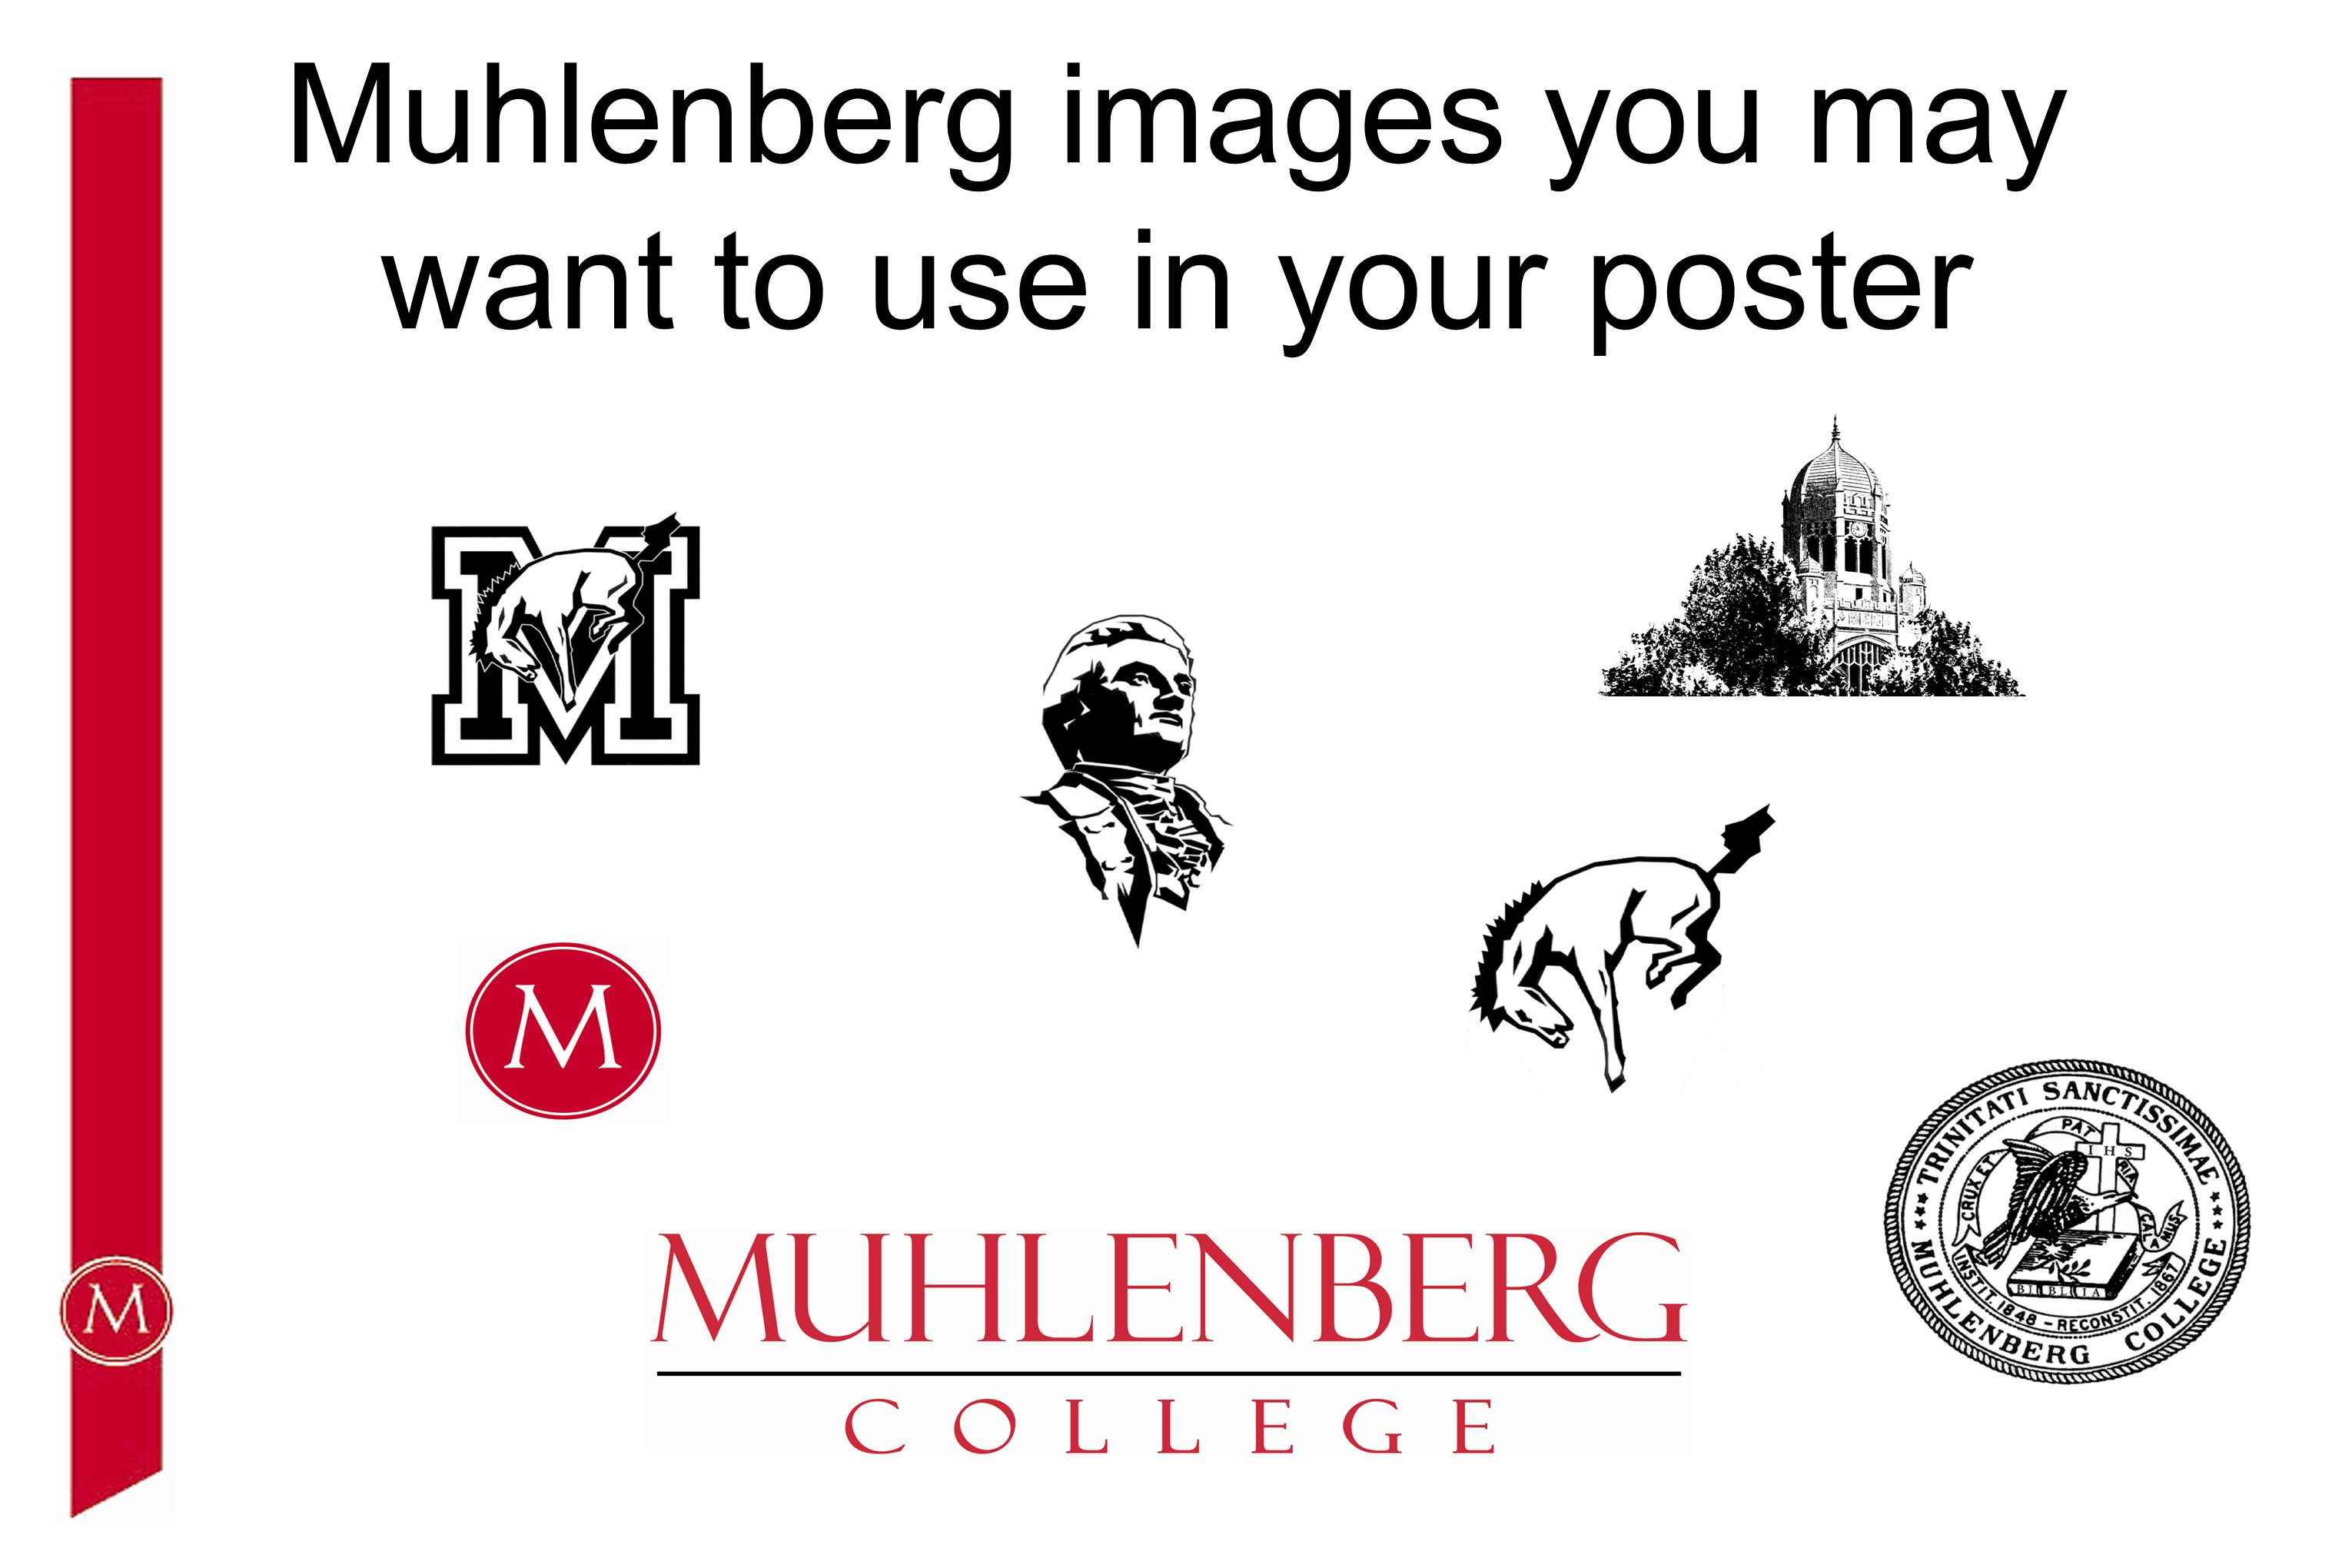 Muhlenberg images you may want to use in your poster